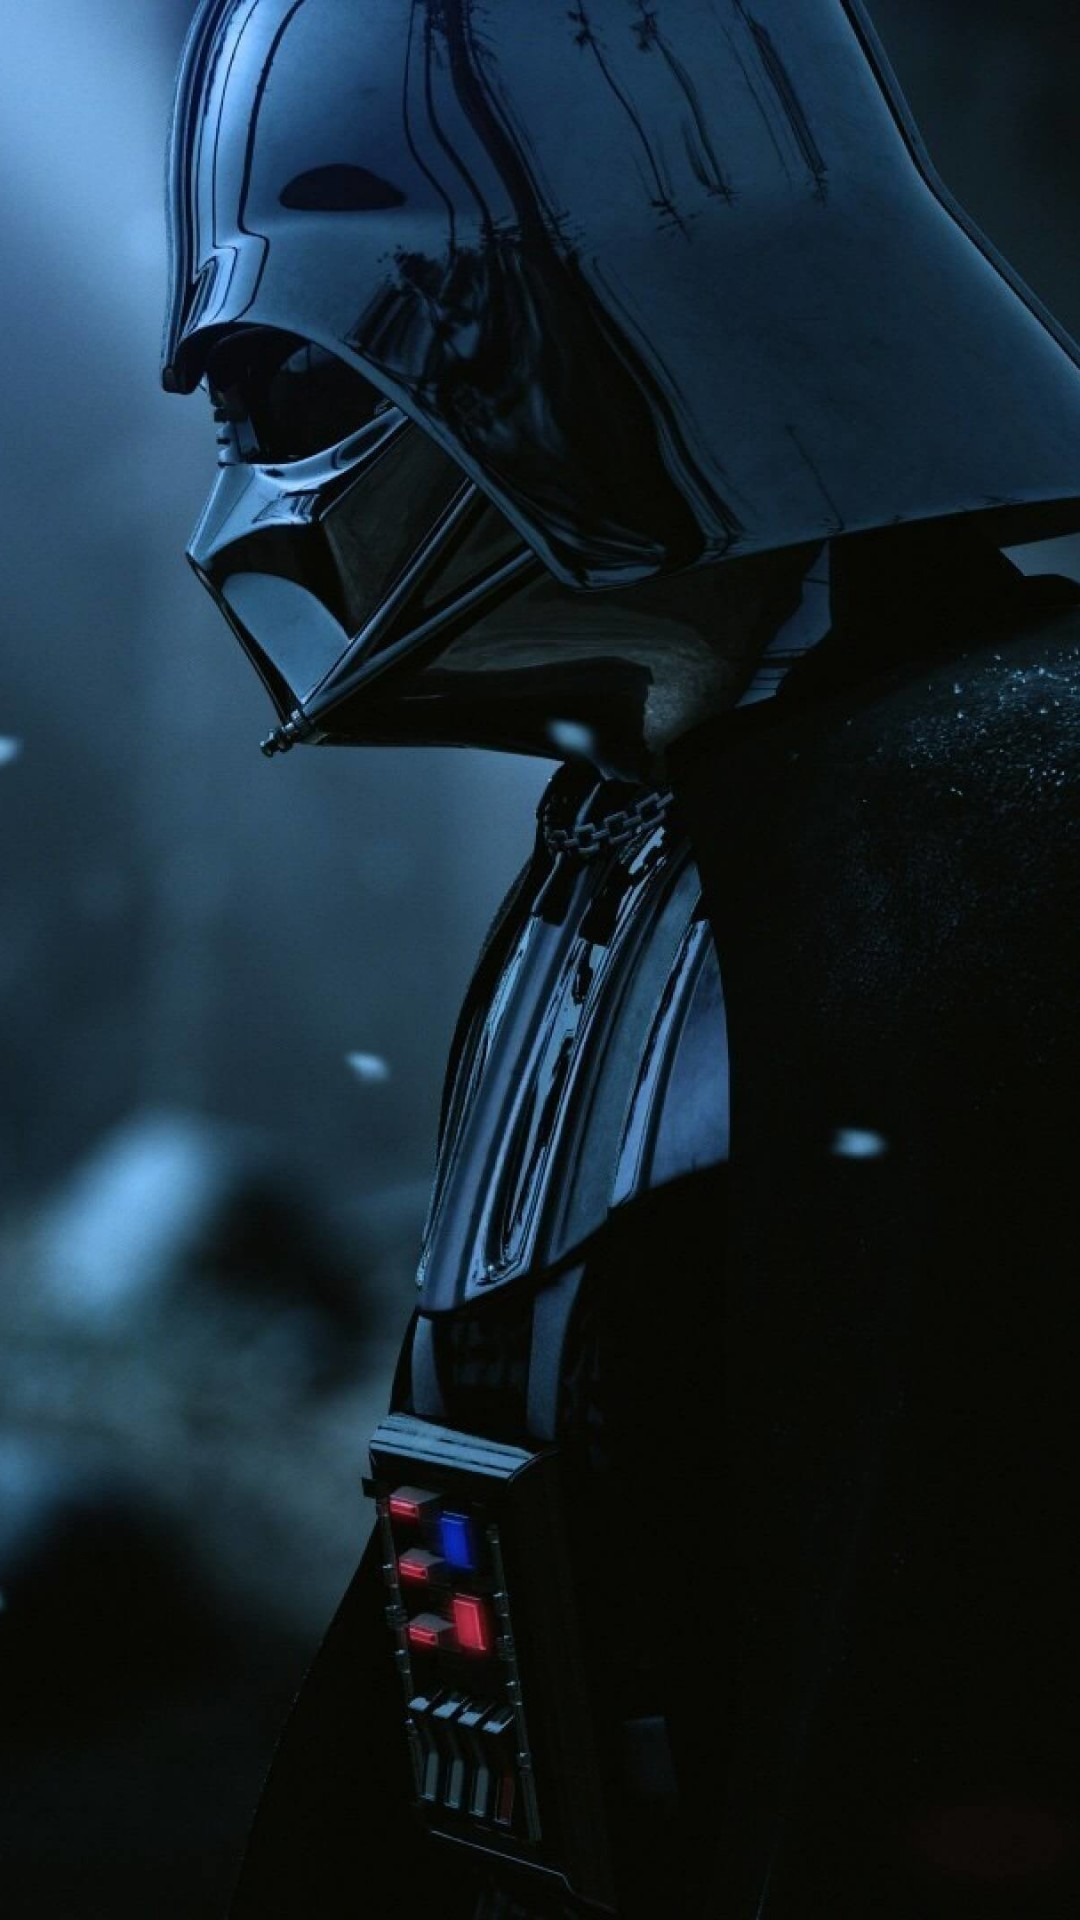 Darth Vader - The Force Unleashed 2 Wallpaper for SONY Xperia Z1